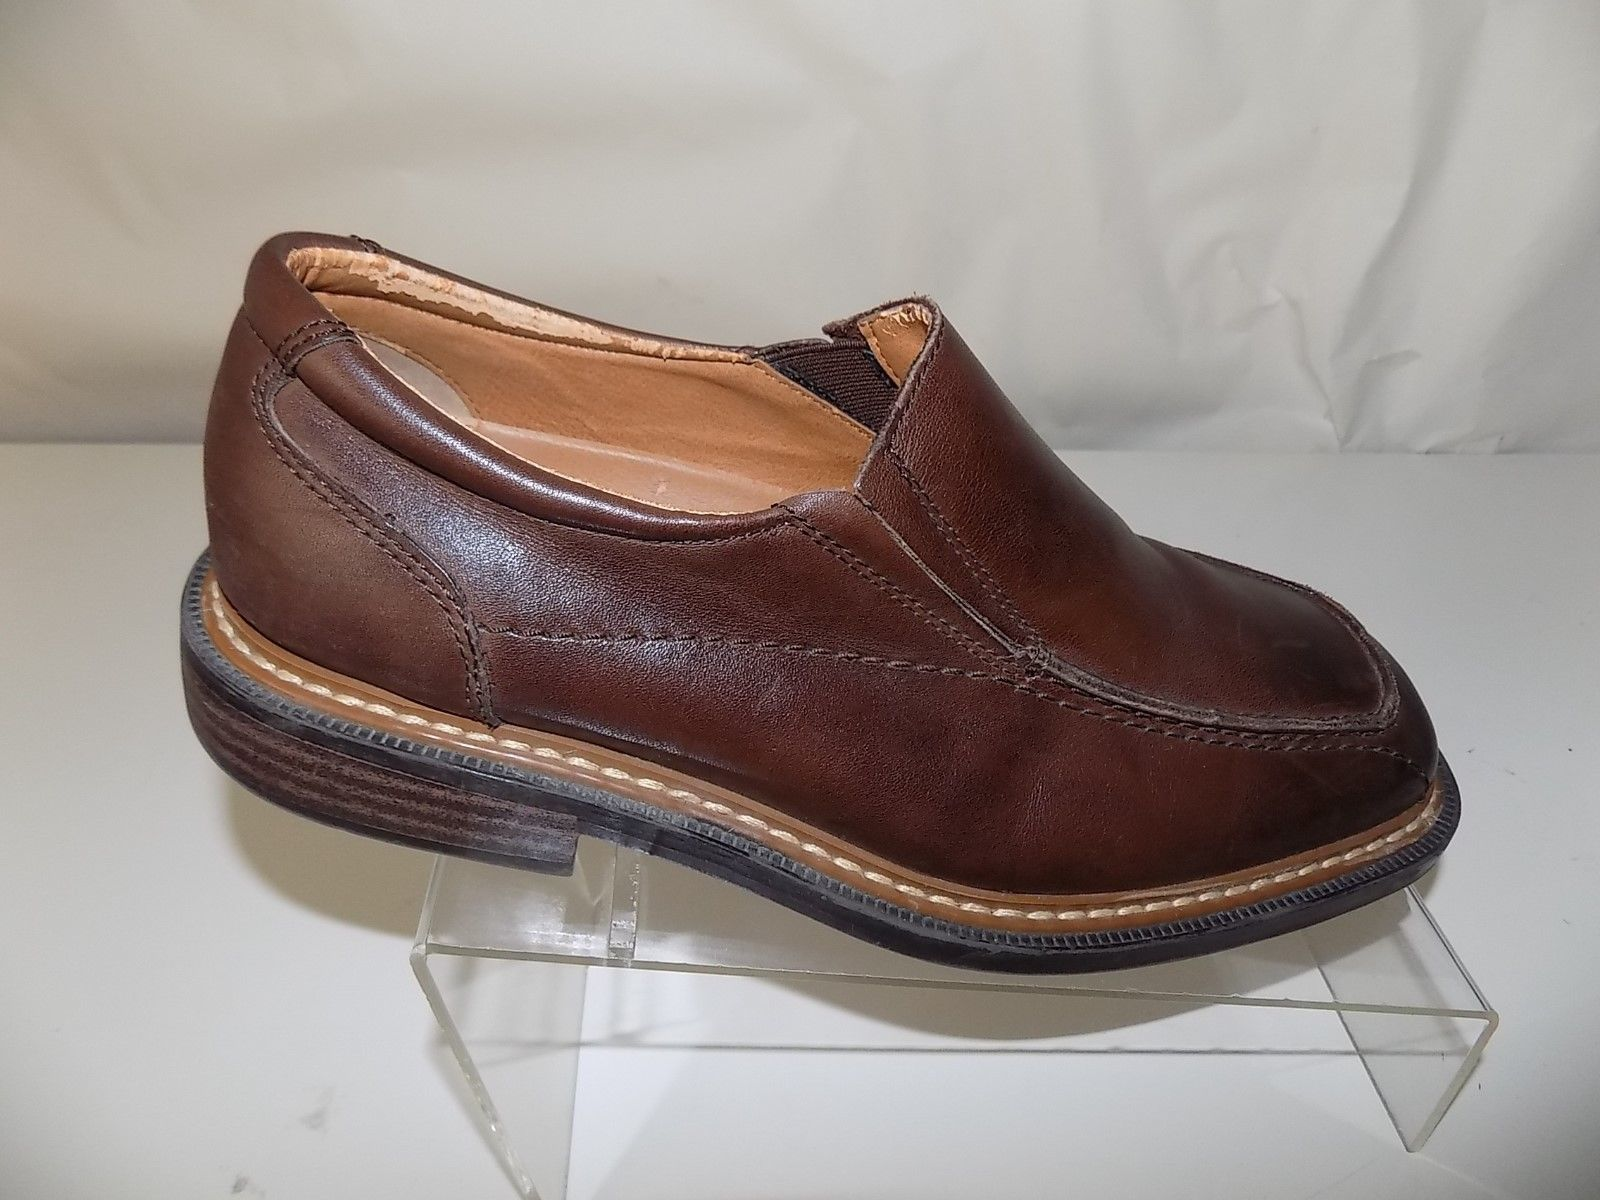 bb8b0768aff9 Skechers Collection Brown Leather Slip On and 50 similar items